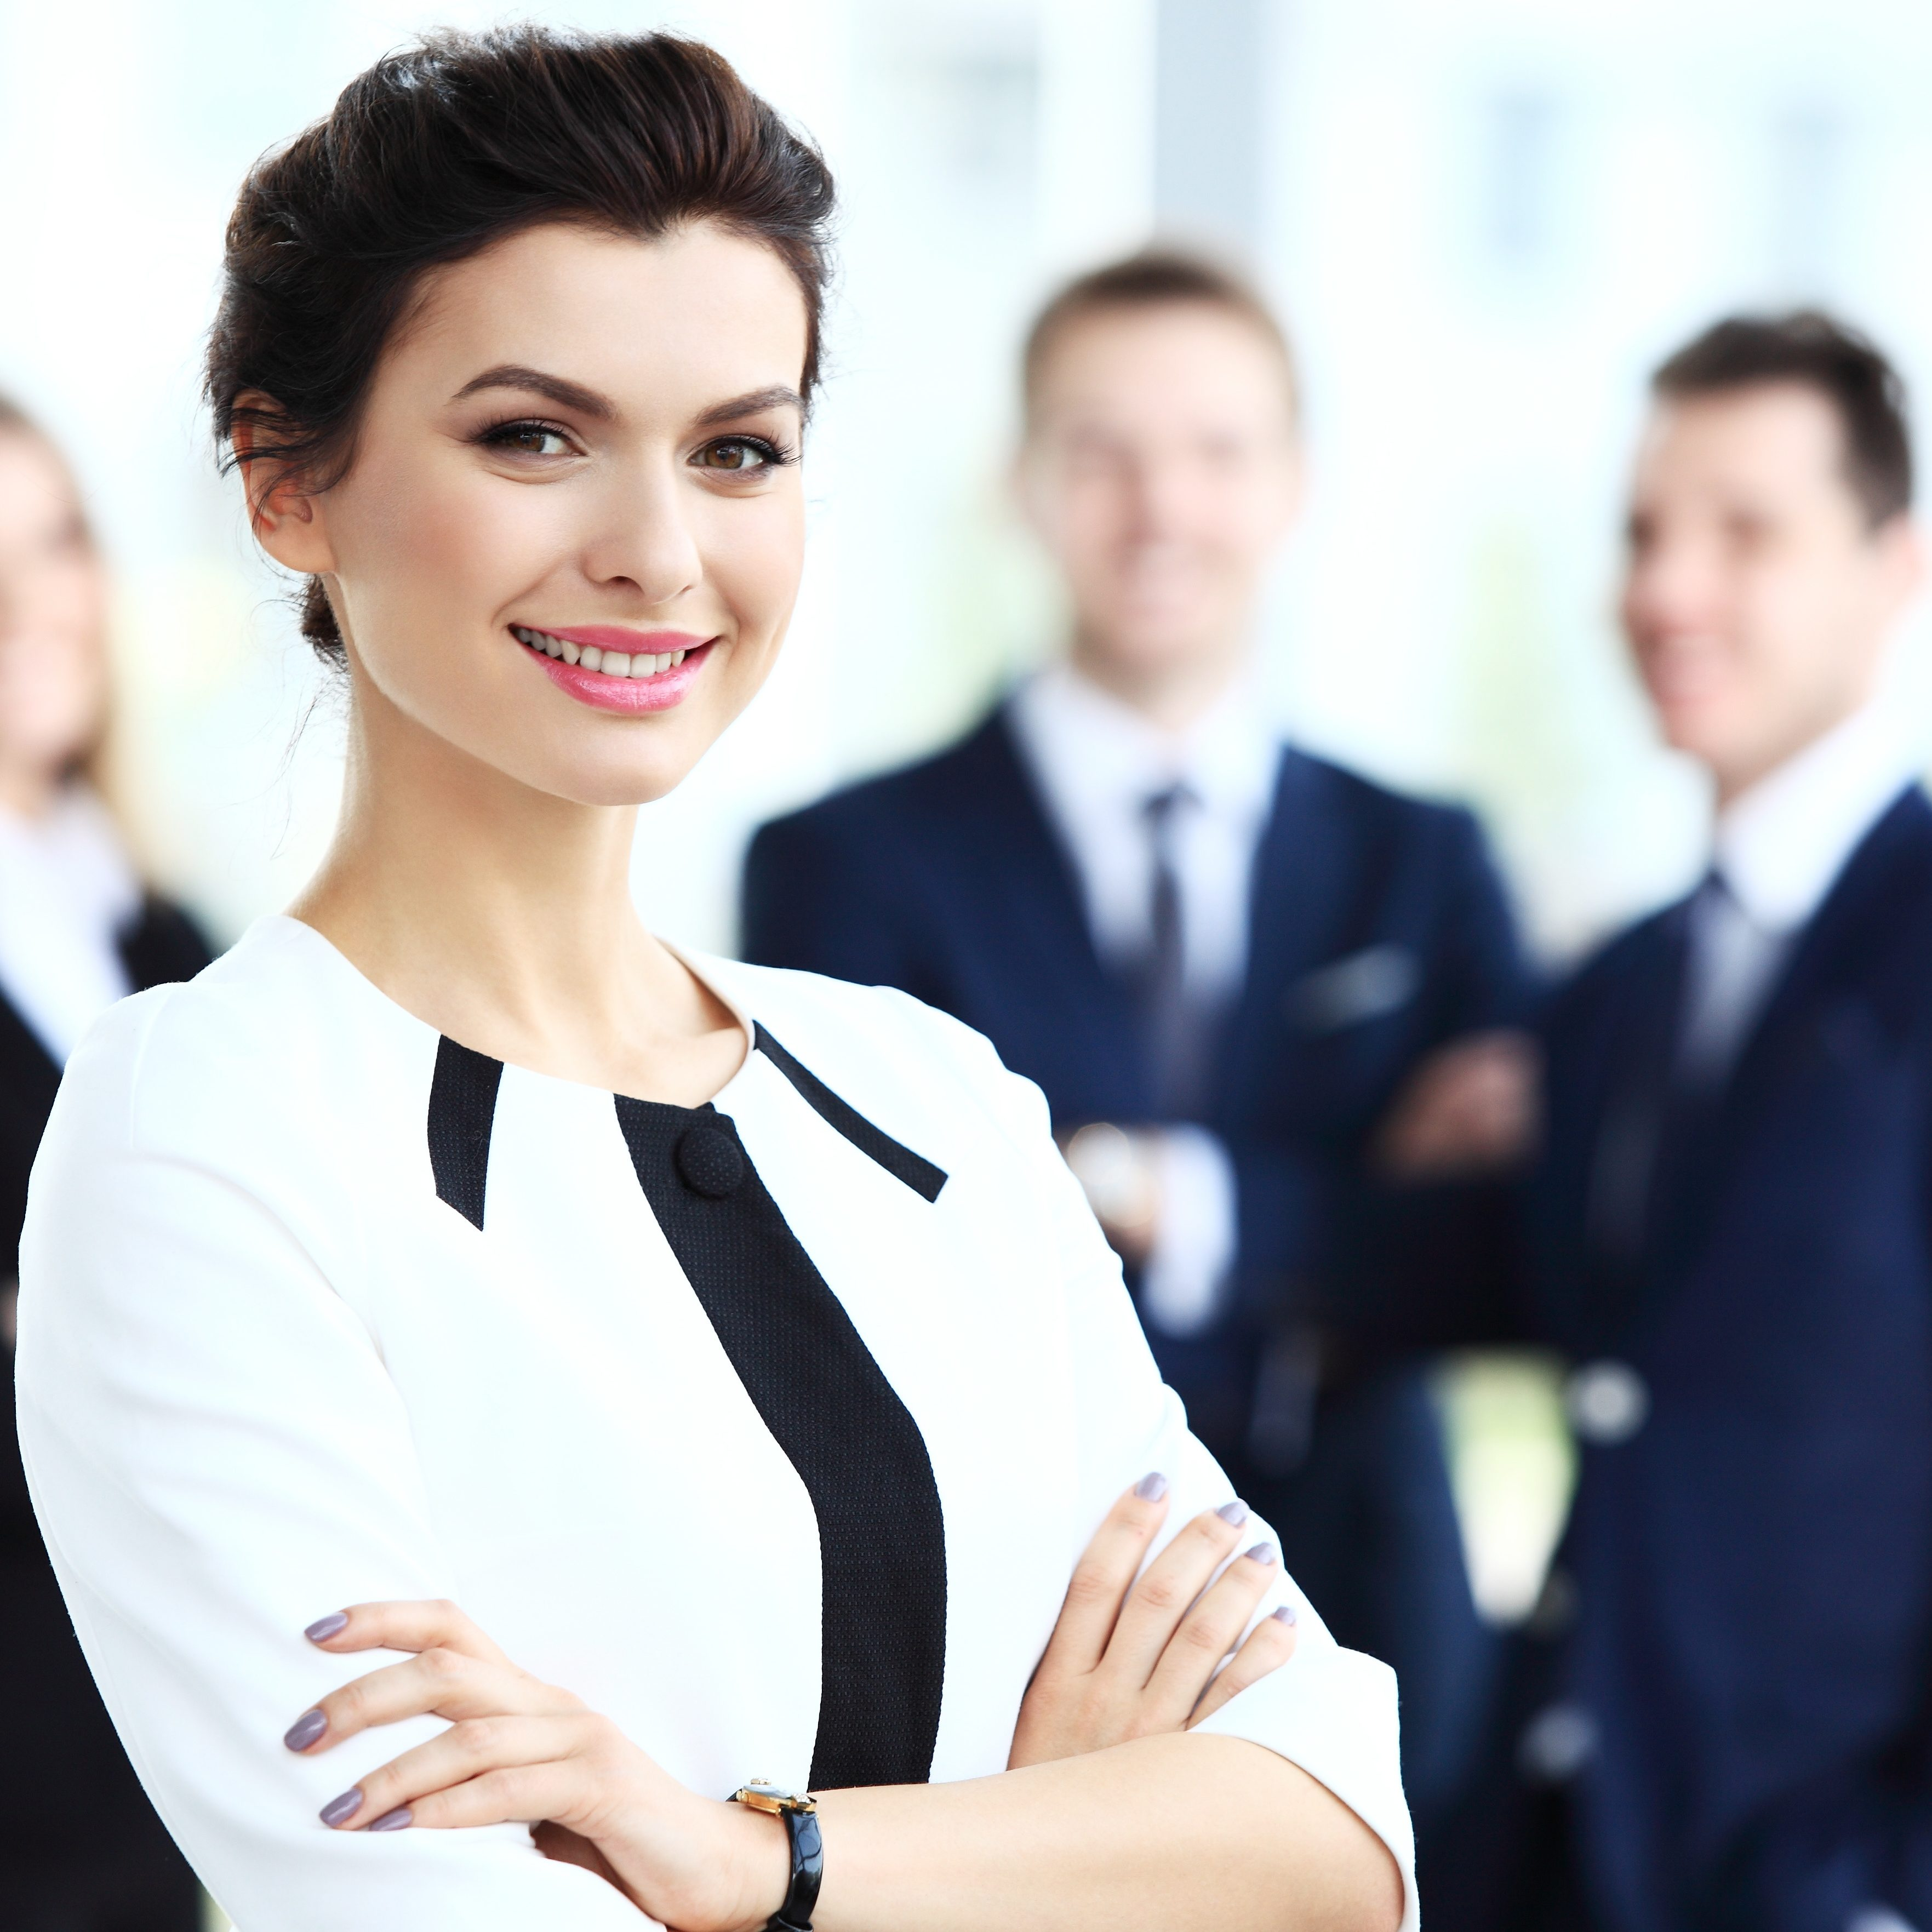 Services for Leadership Professionals